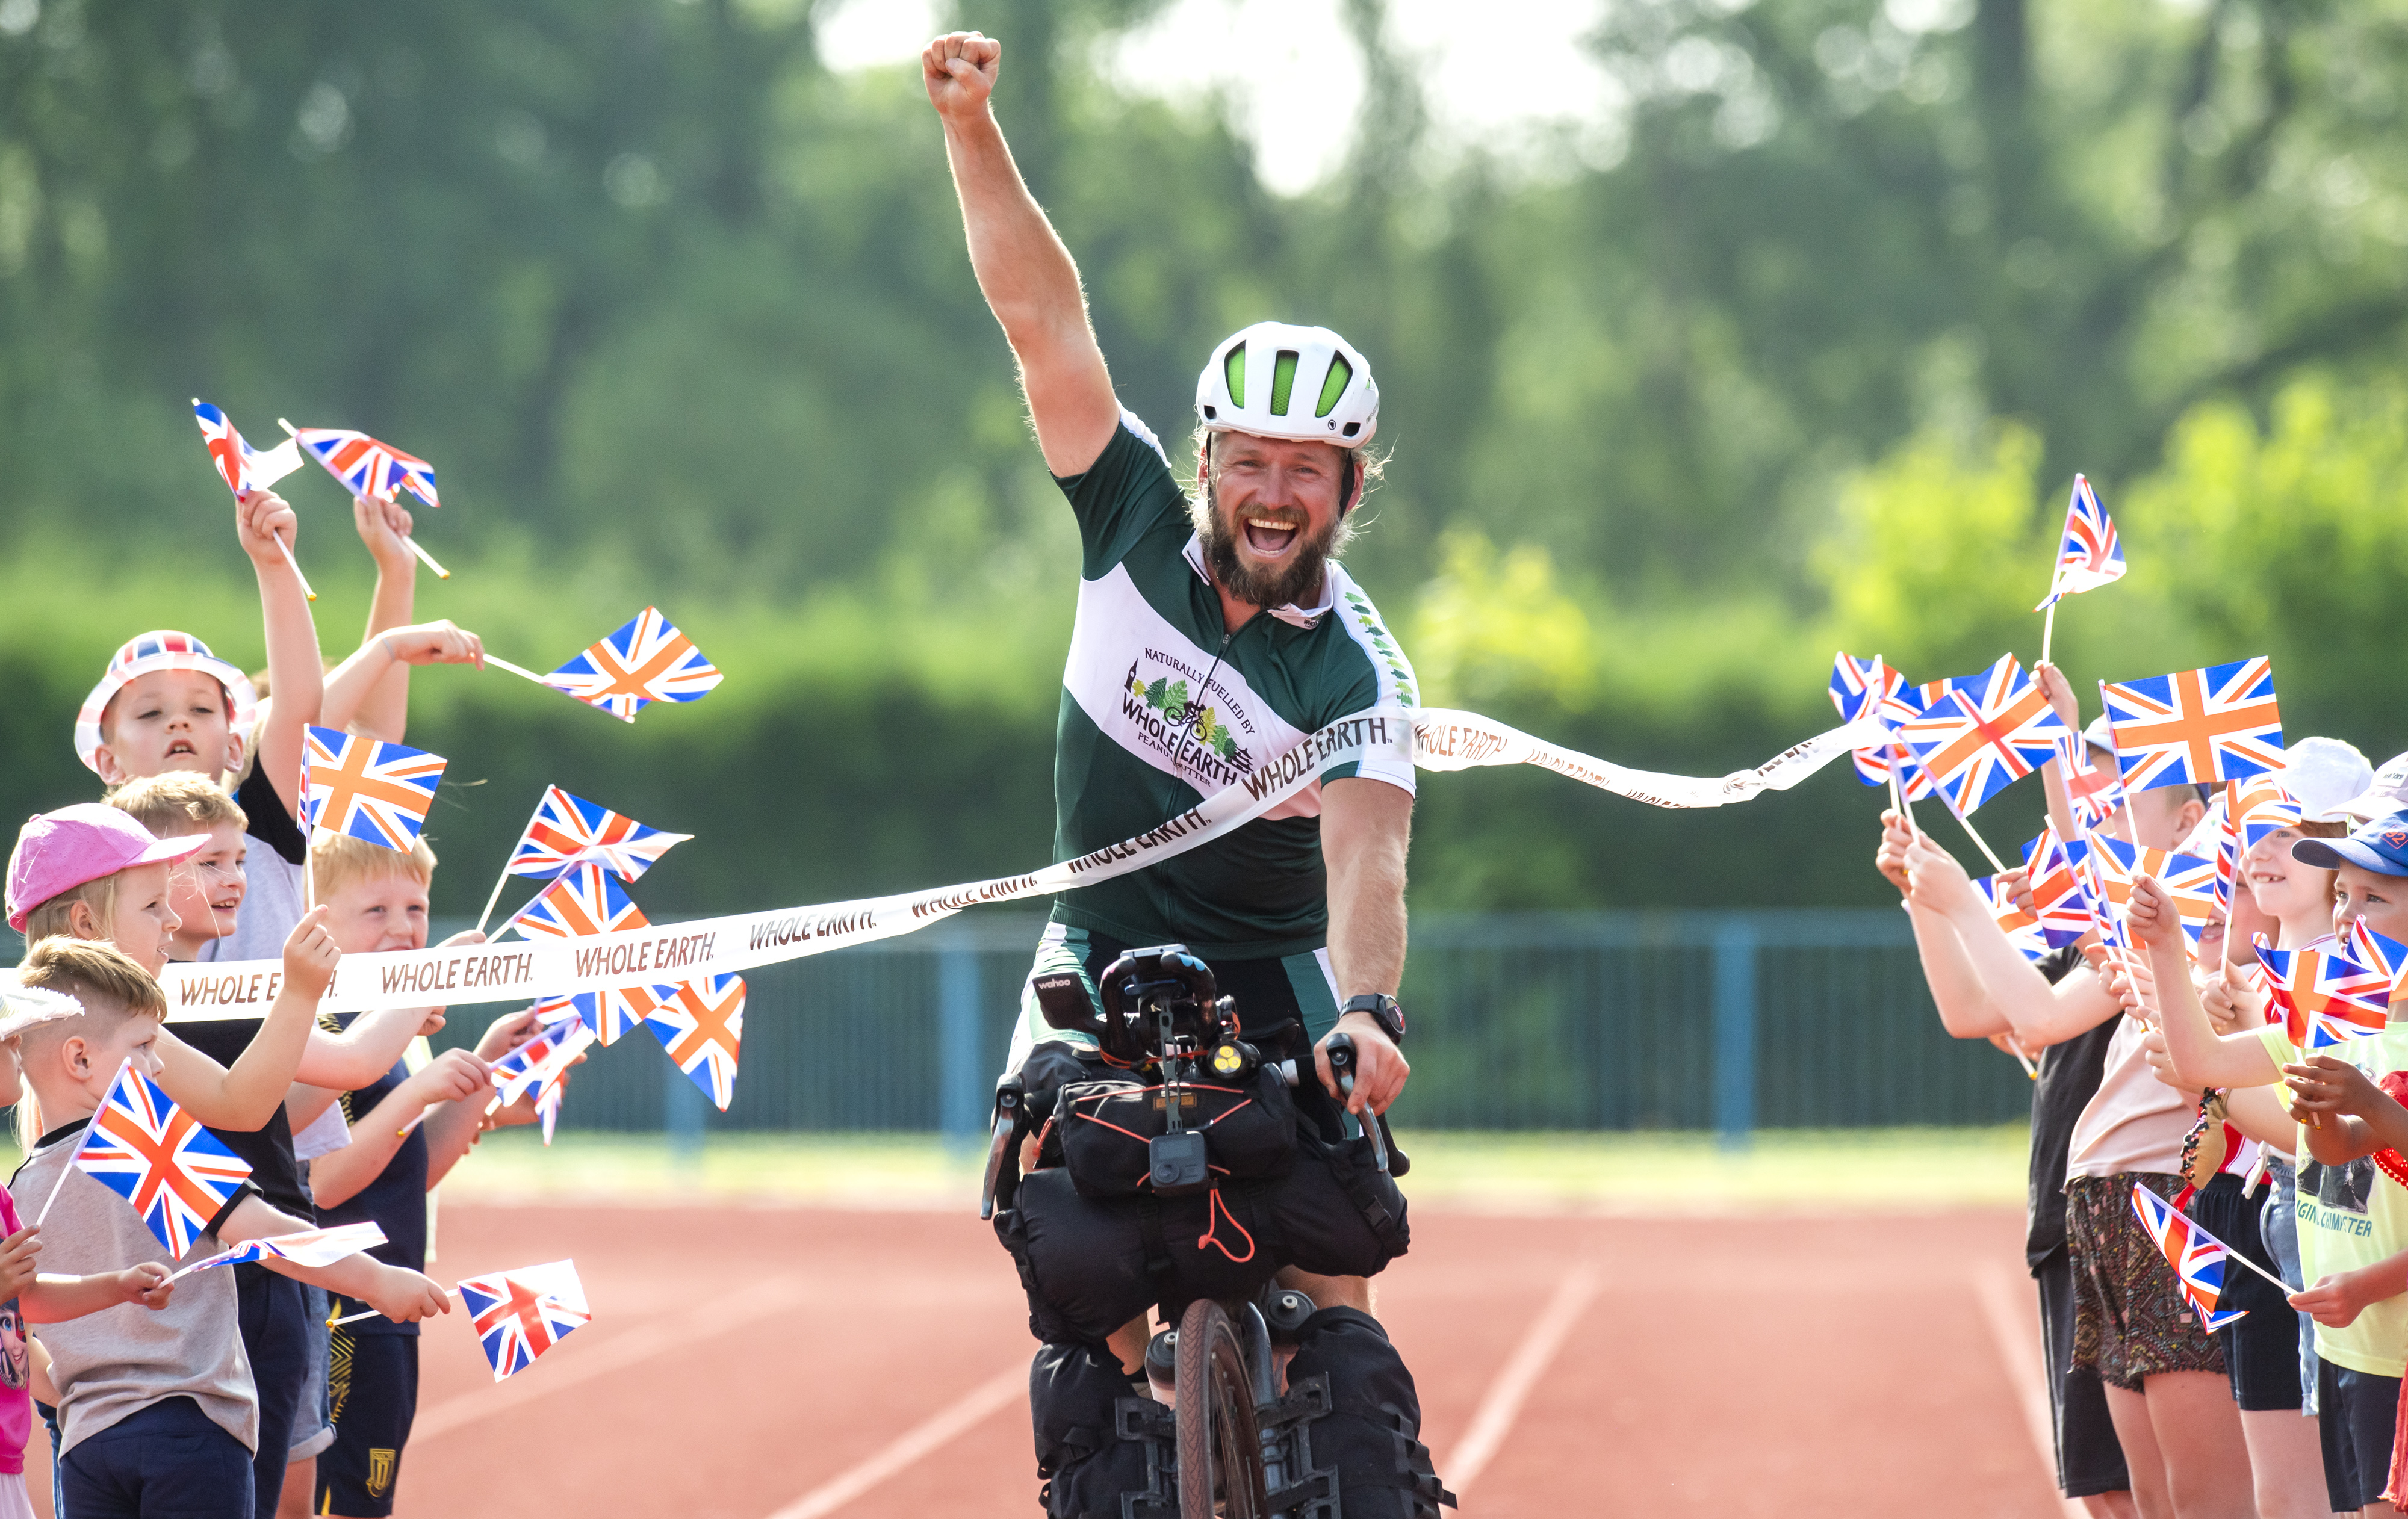 As the Tokyo 2020 Games get underway, Team GB 'superfan', Jamie Ramsay, completes his 80 day, 10,000km 'Whole Earth - Wh.JPG